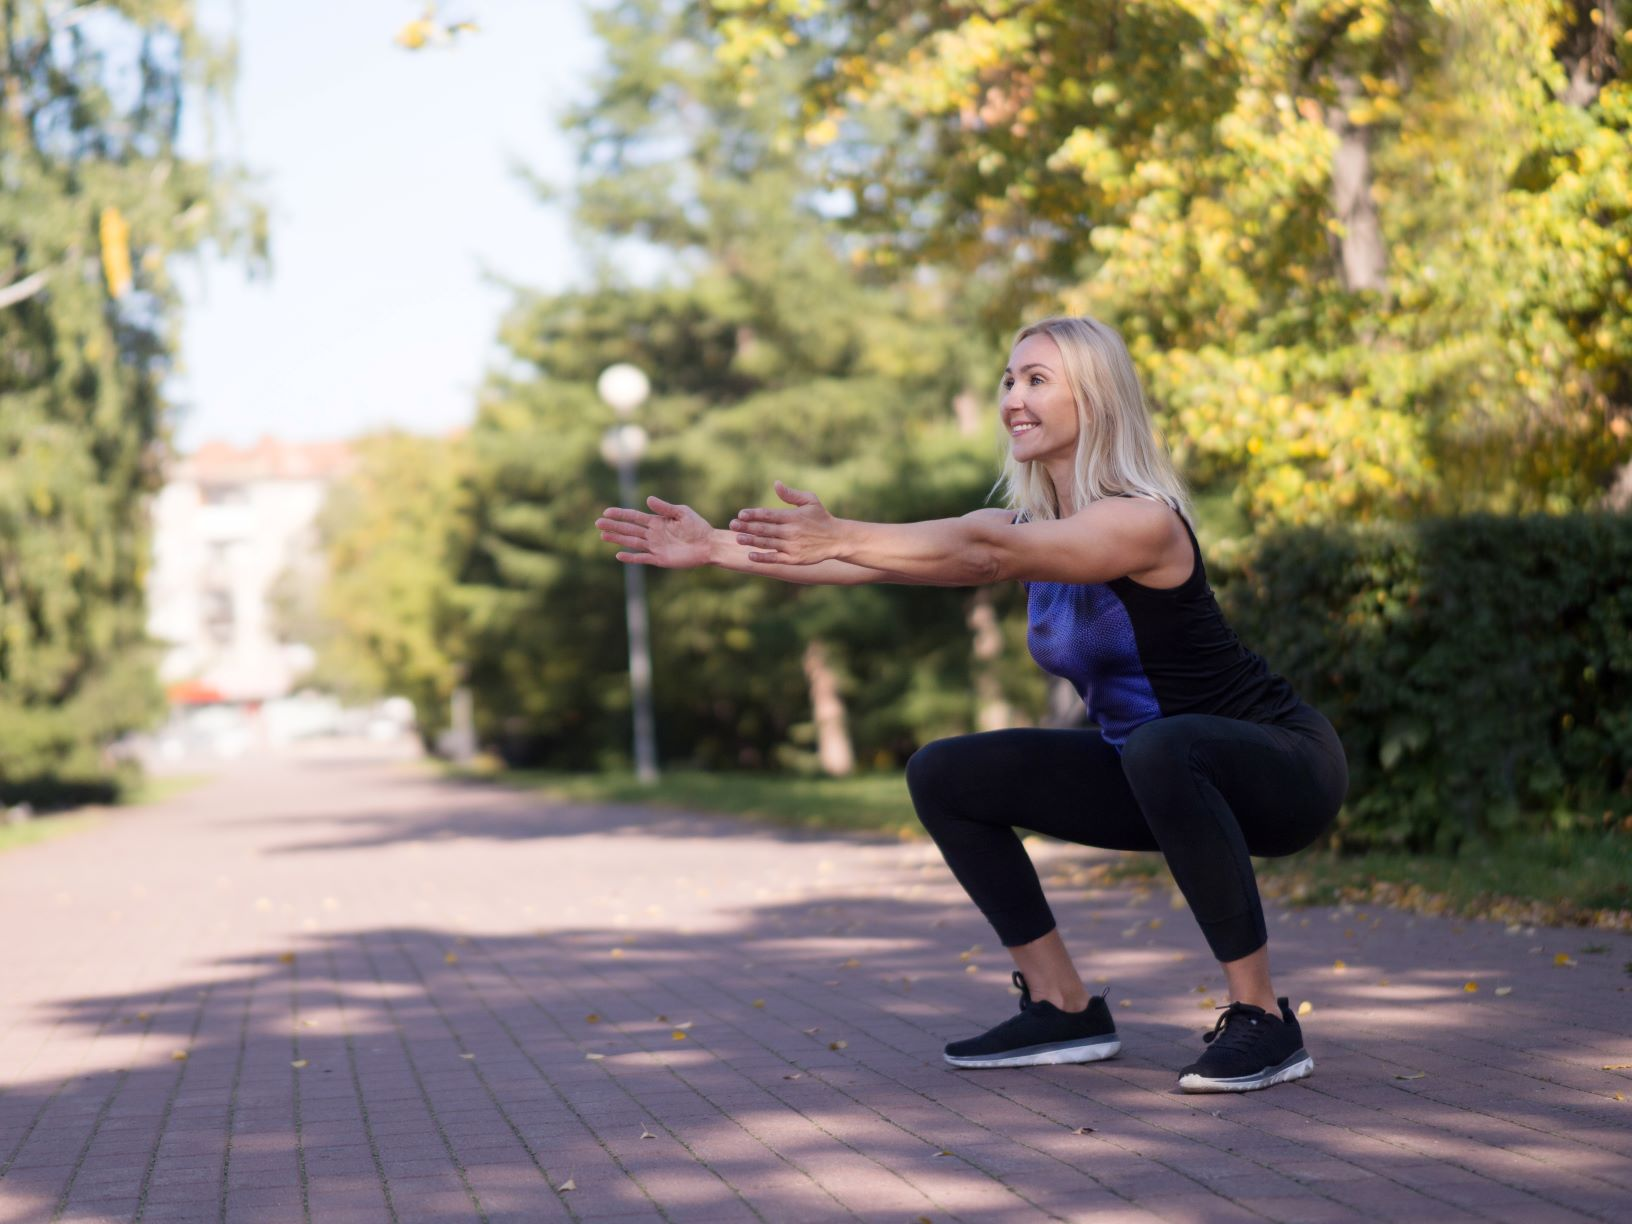 Middle-aged woman outside in deep squat, workouts to get your booty swimsuit ready